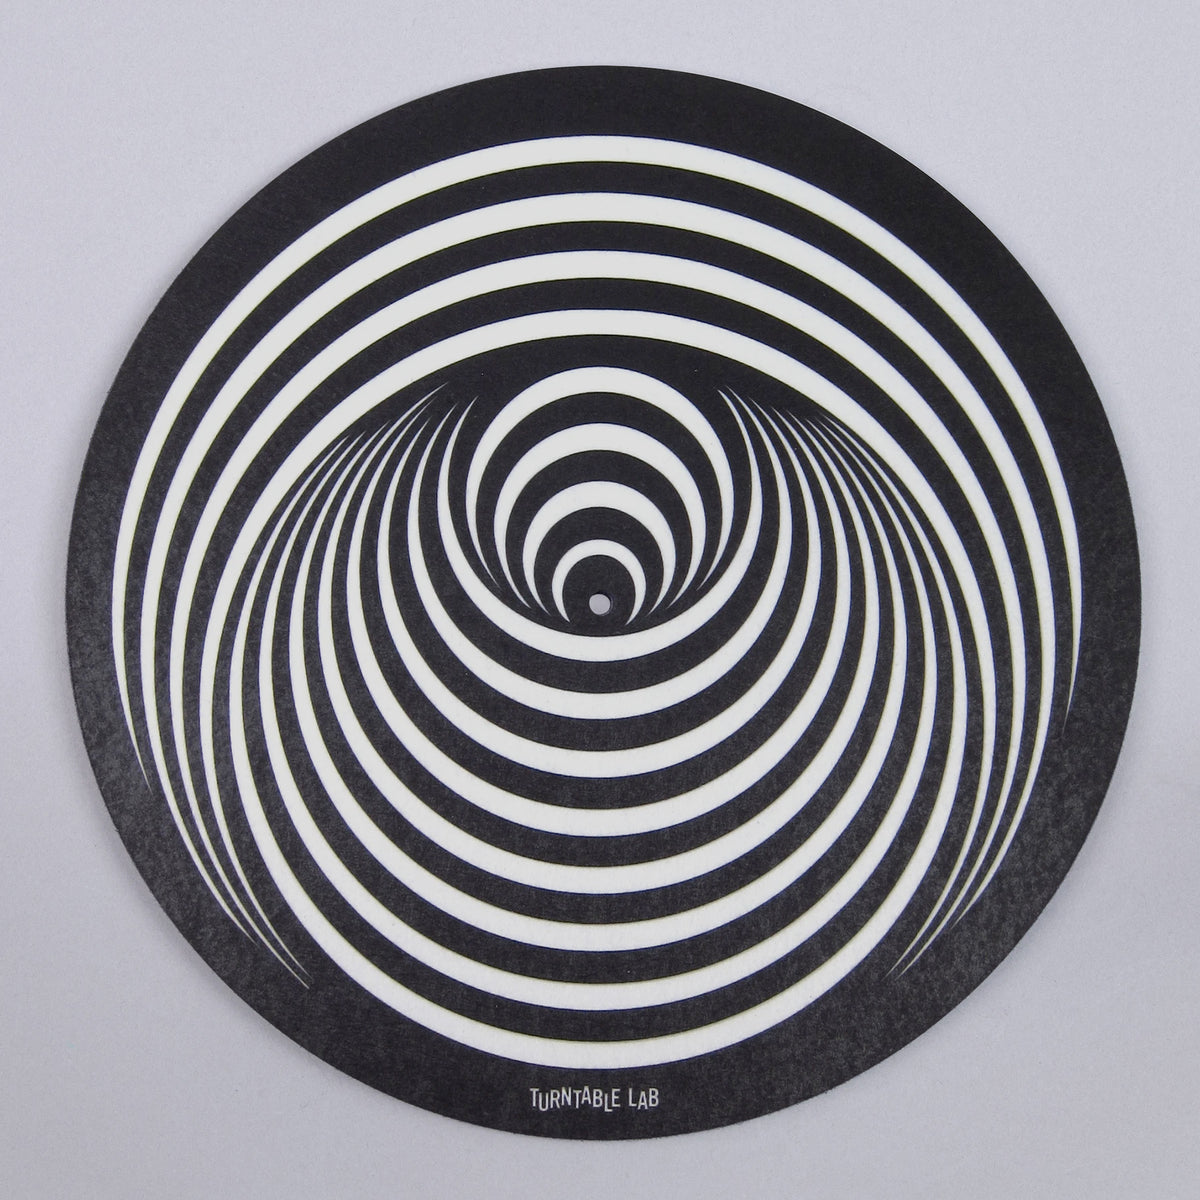 Turntable Lab: Ed Hertz Slipmat - Single